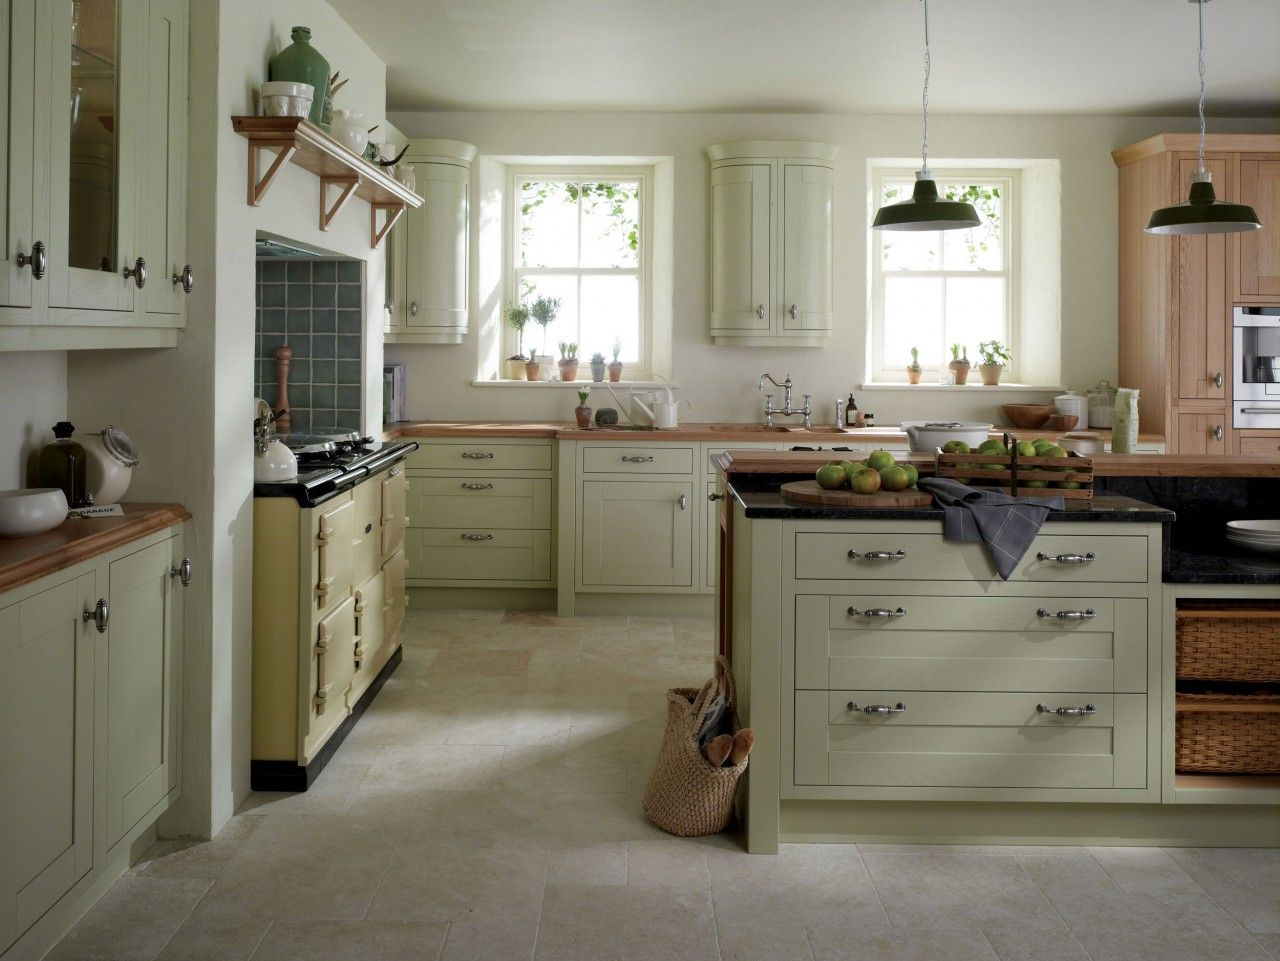 Olive Green Kitchen Cabinet Kitchen Design Small Country